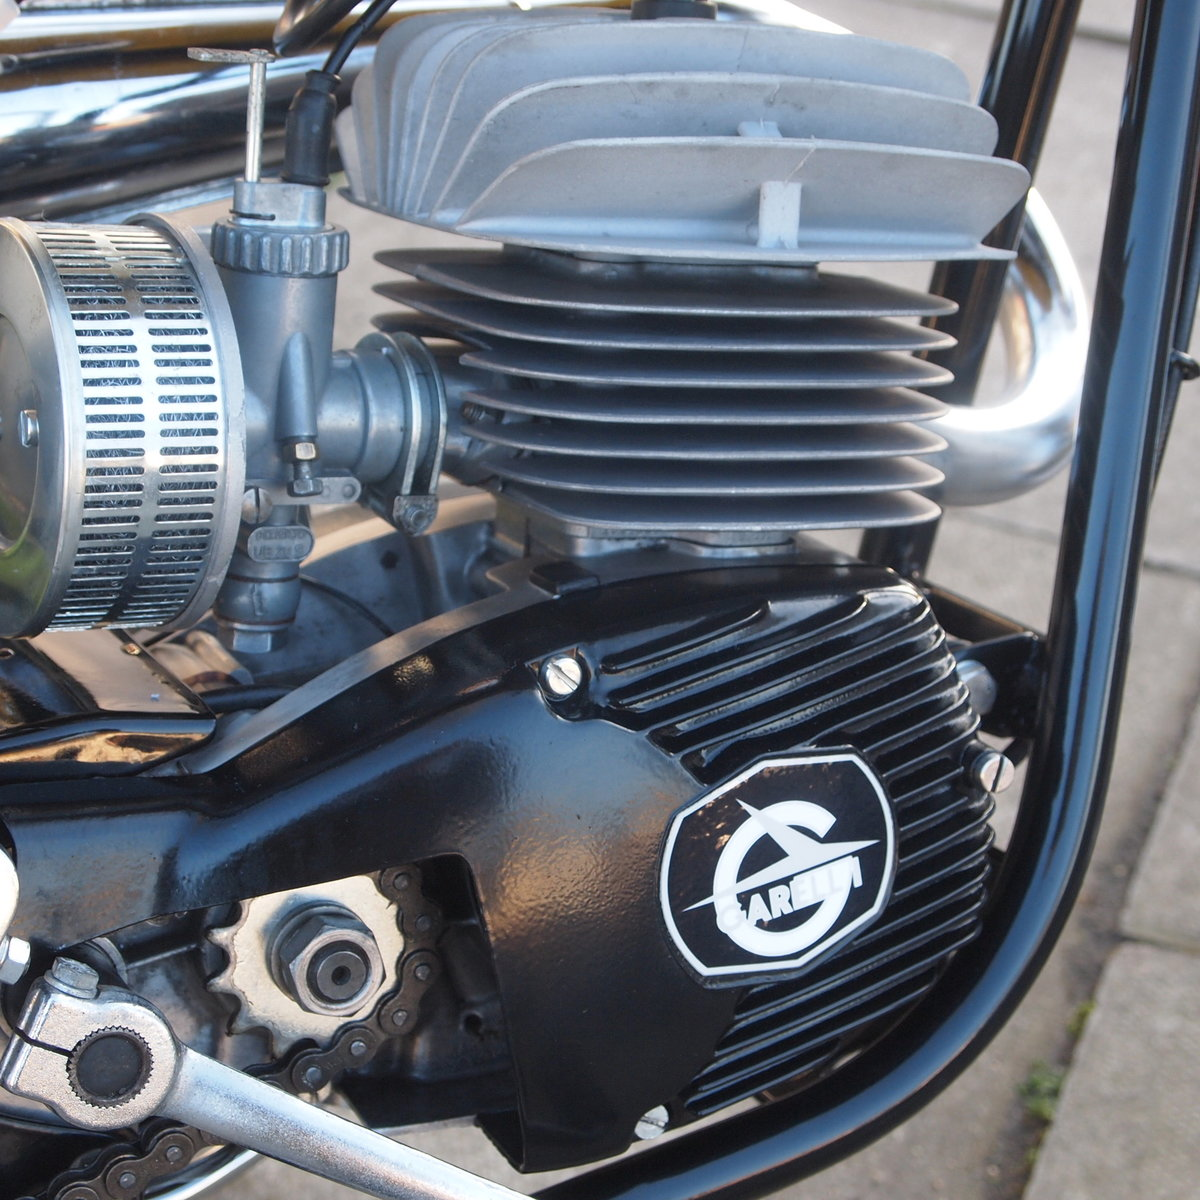 1975 Rare Radial Cylinder Head Garelli Tiger Cross With Pedals SOLD (picture 4 of 6)